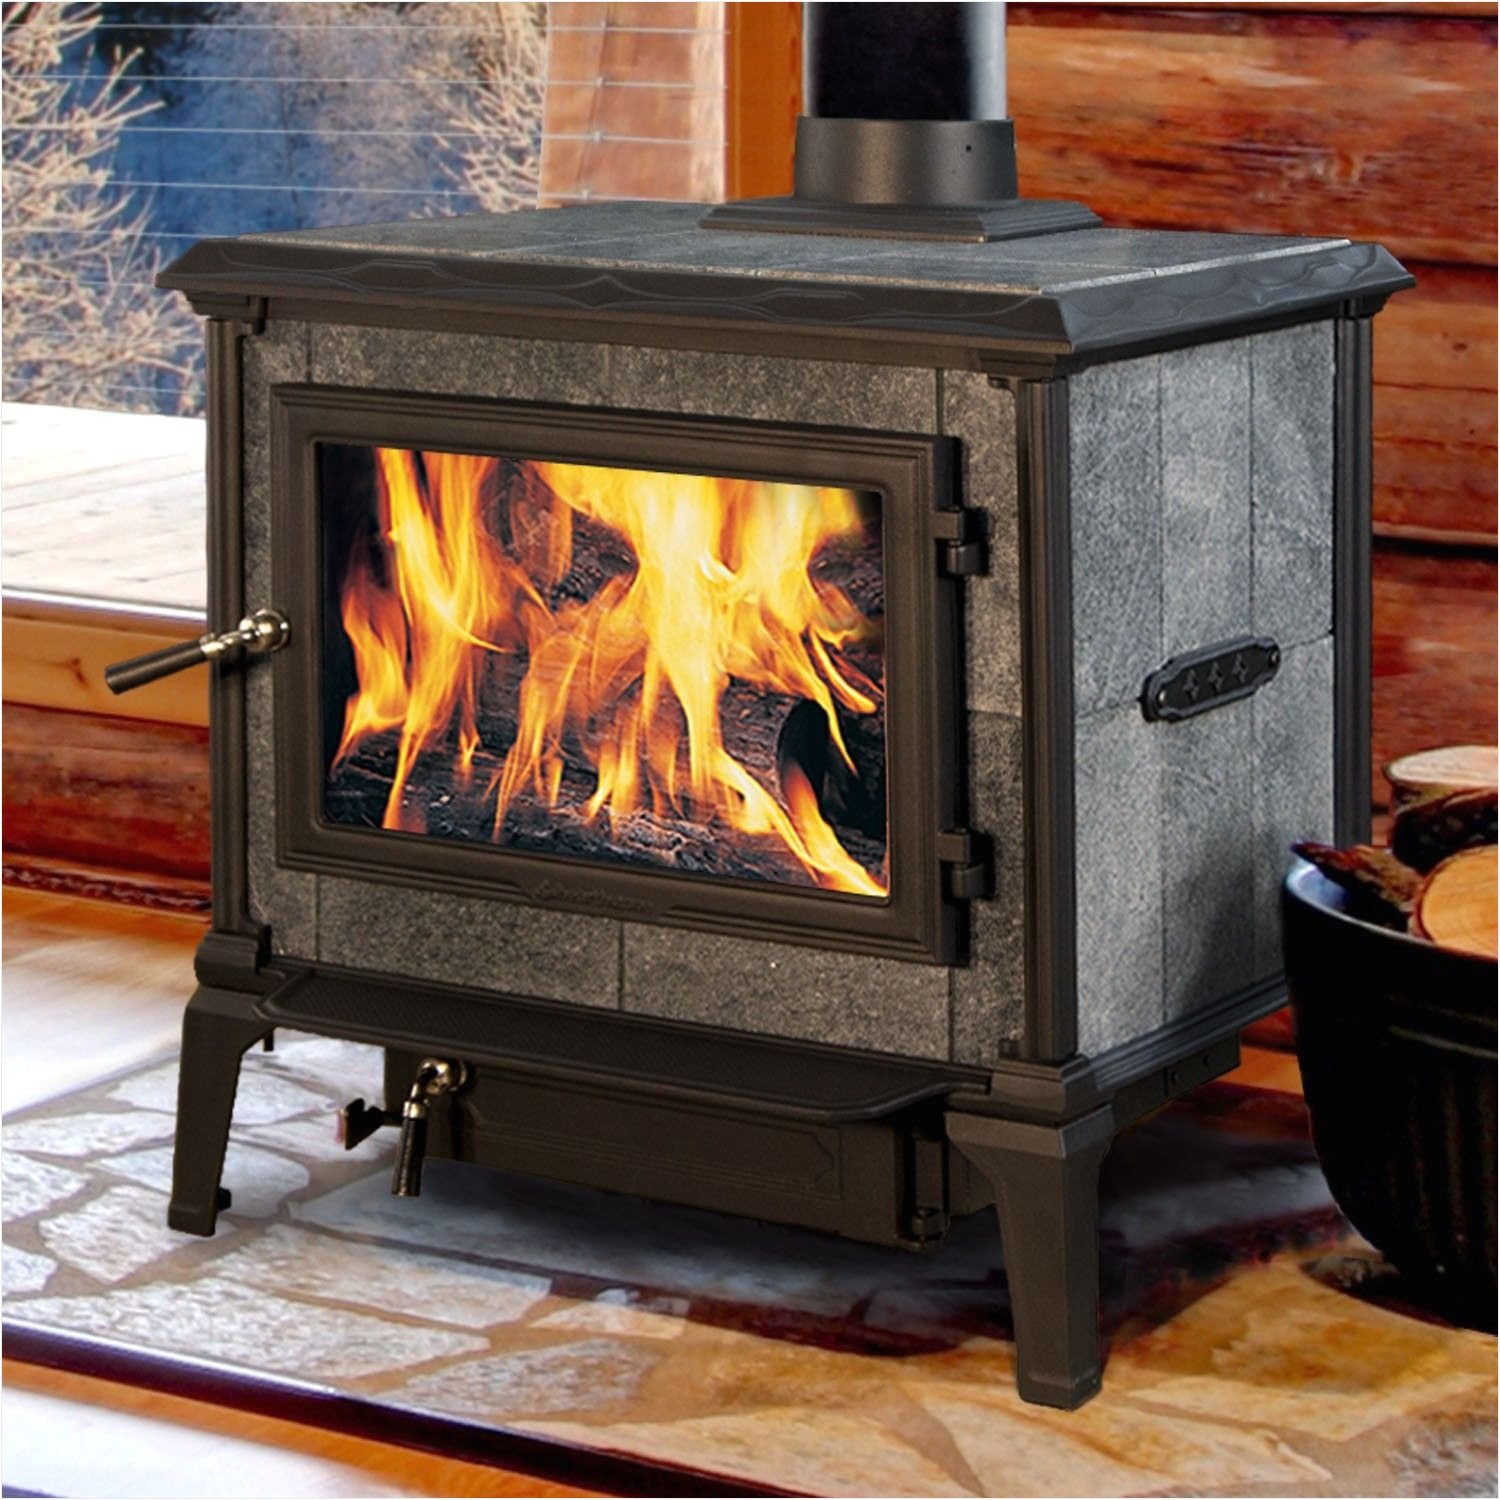 mansfield 8012 wood stove by hearthstone heats up to 2500 sq ft of fireplace august 2017